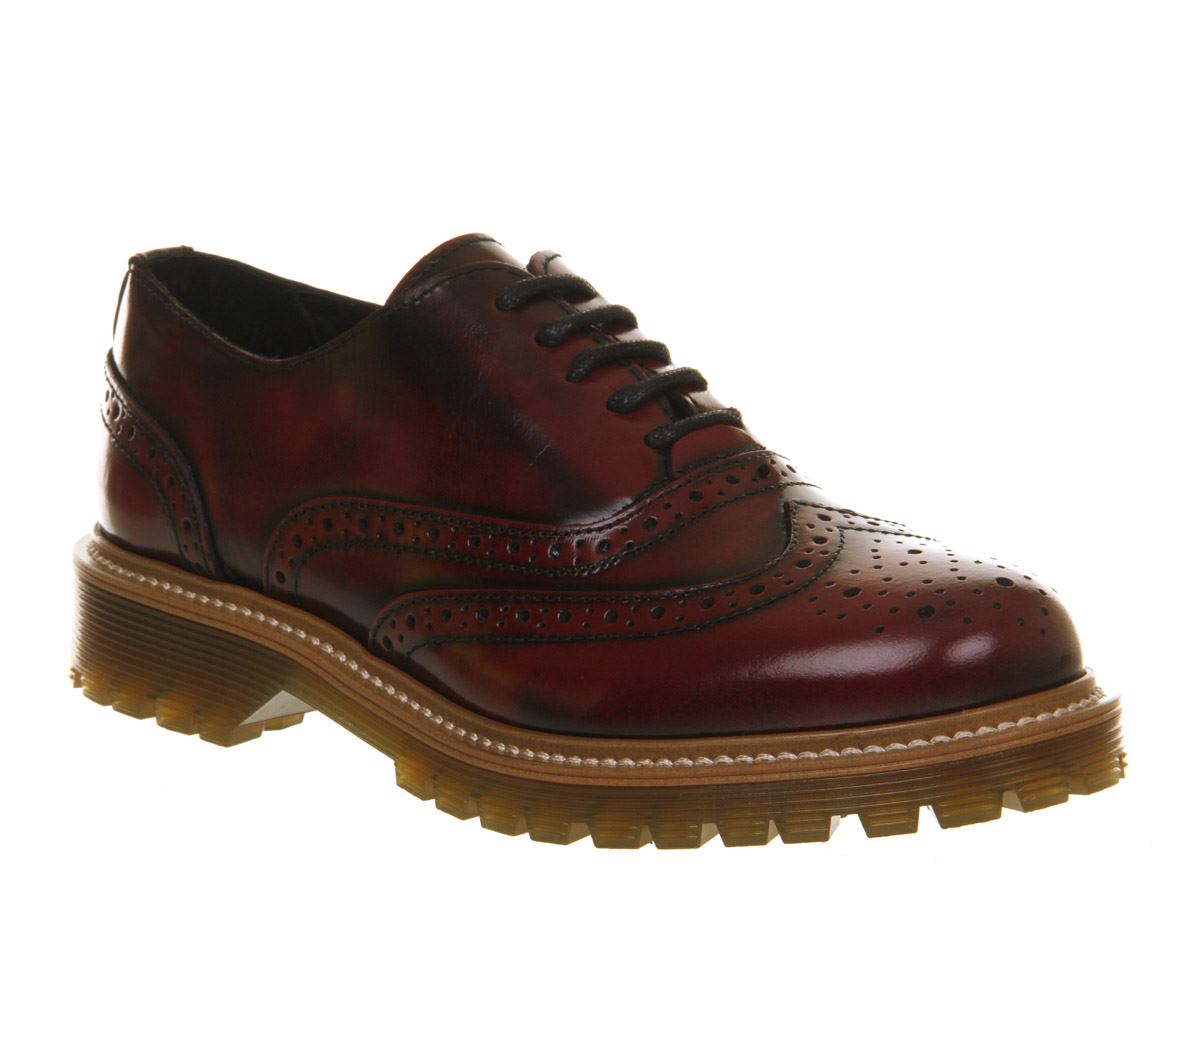 Office Vendetta Cleated Brogue Lace Up Up Lace Burgundy Box Leder UK 4 403263